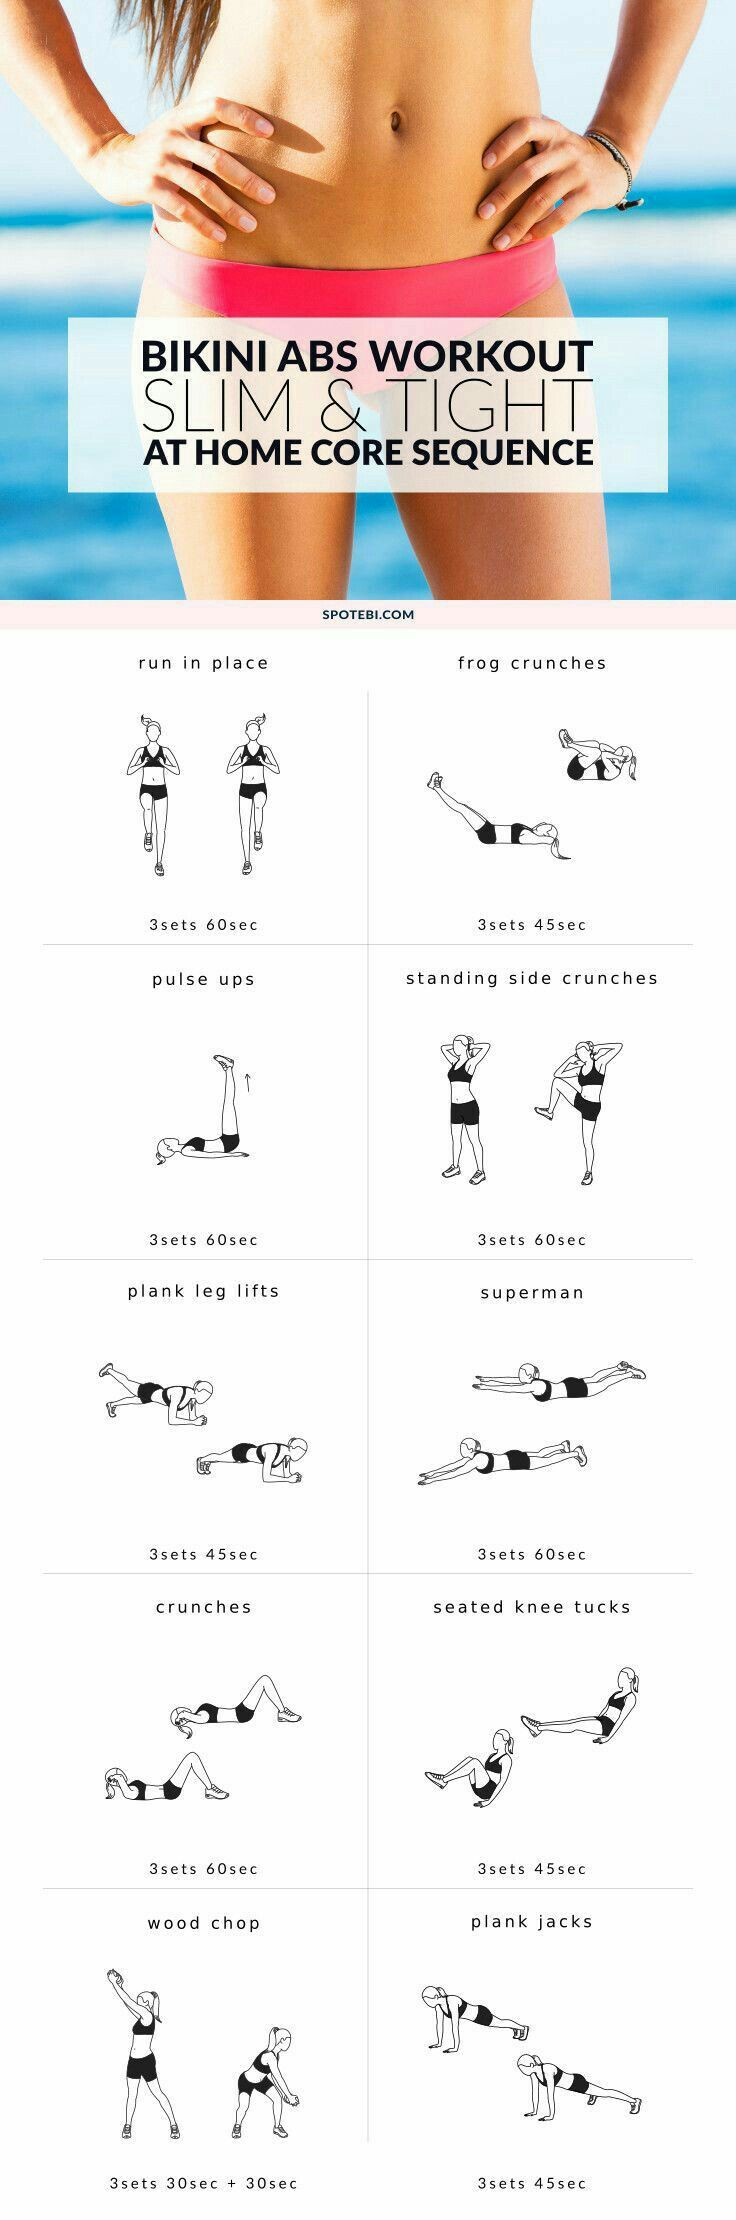 76 best Exercise images on Pinterest | Losing weight, Healthy living ...